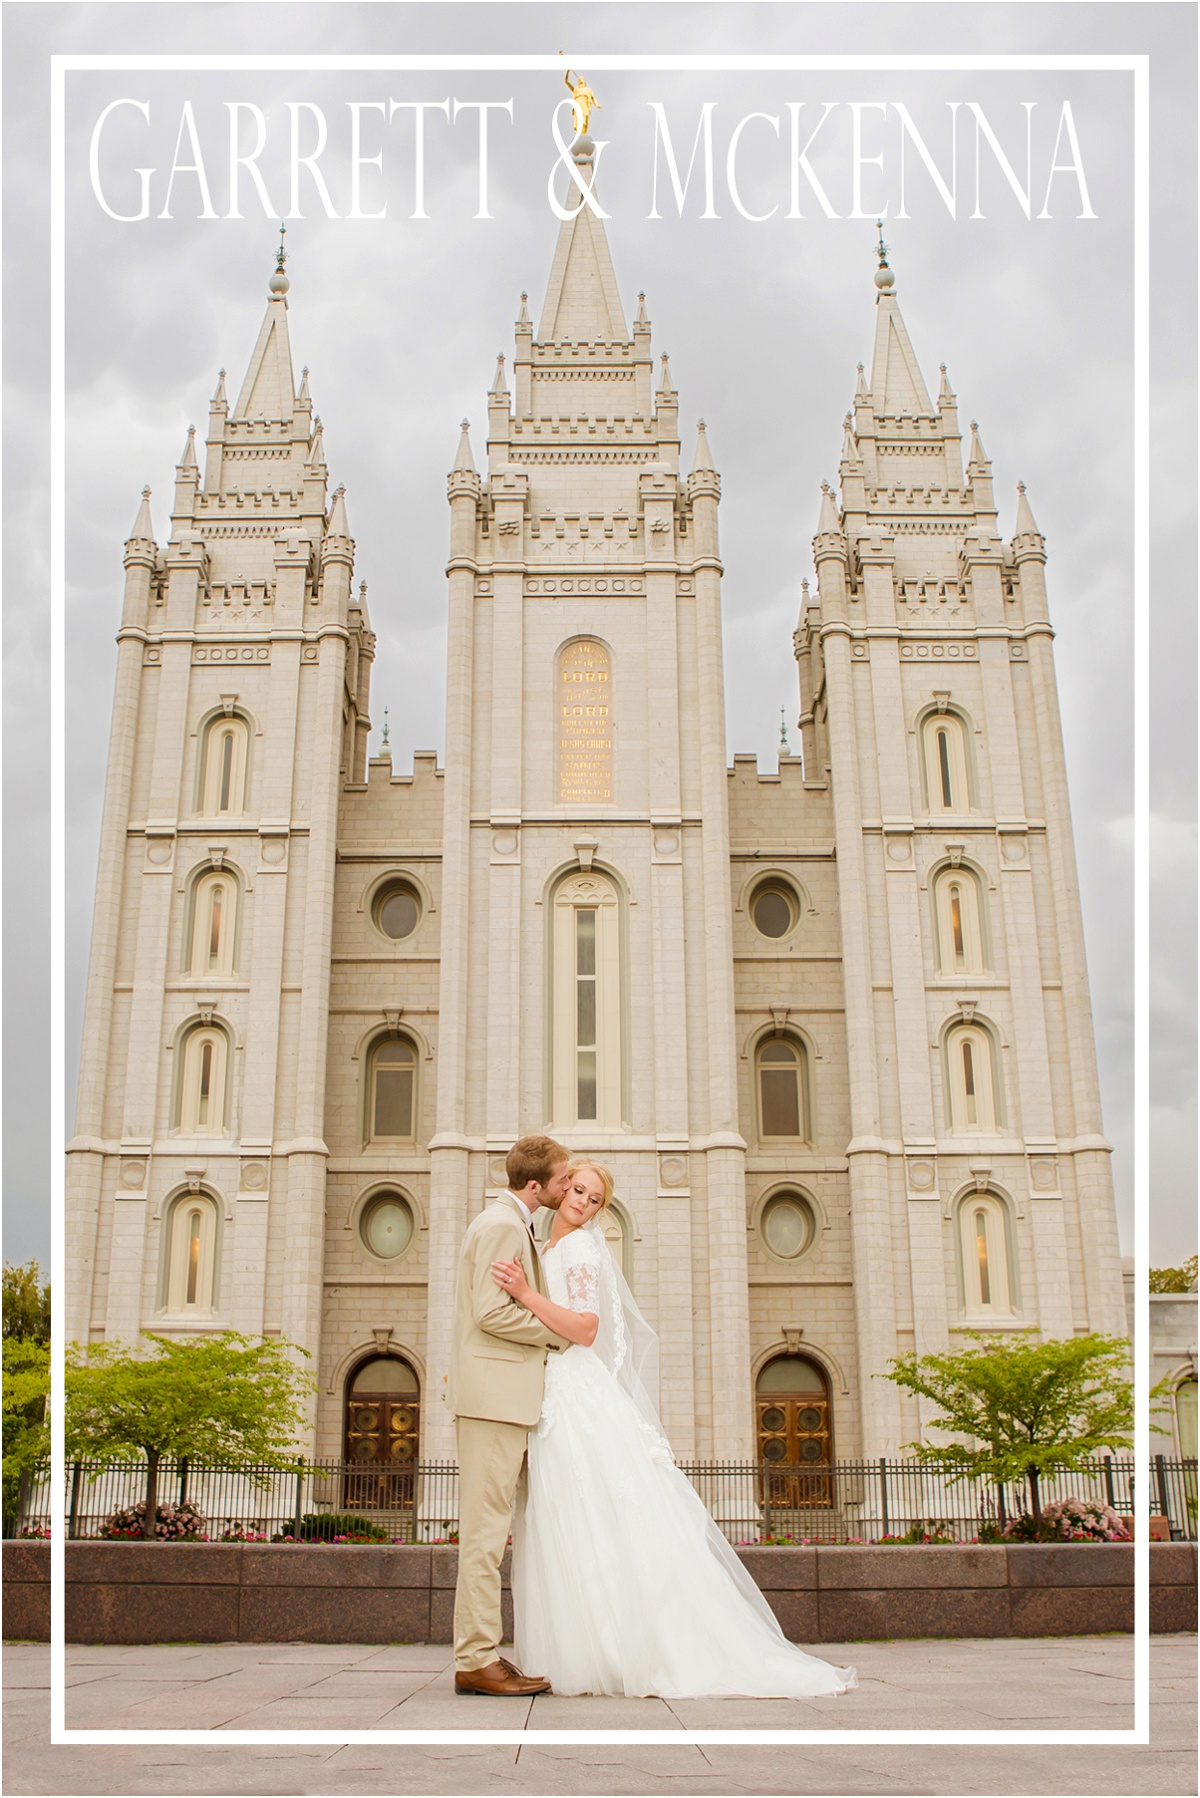 Terra Cooper Photography Weddings Brides 2015_5386.jpg